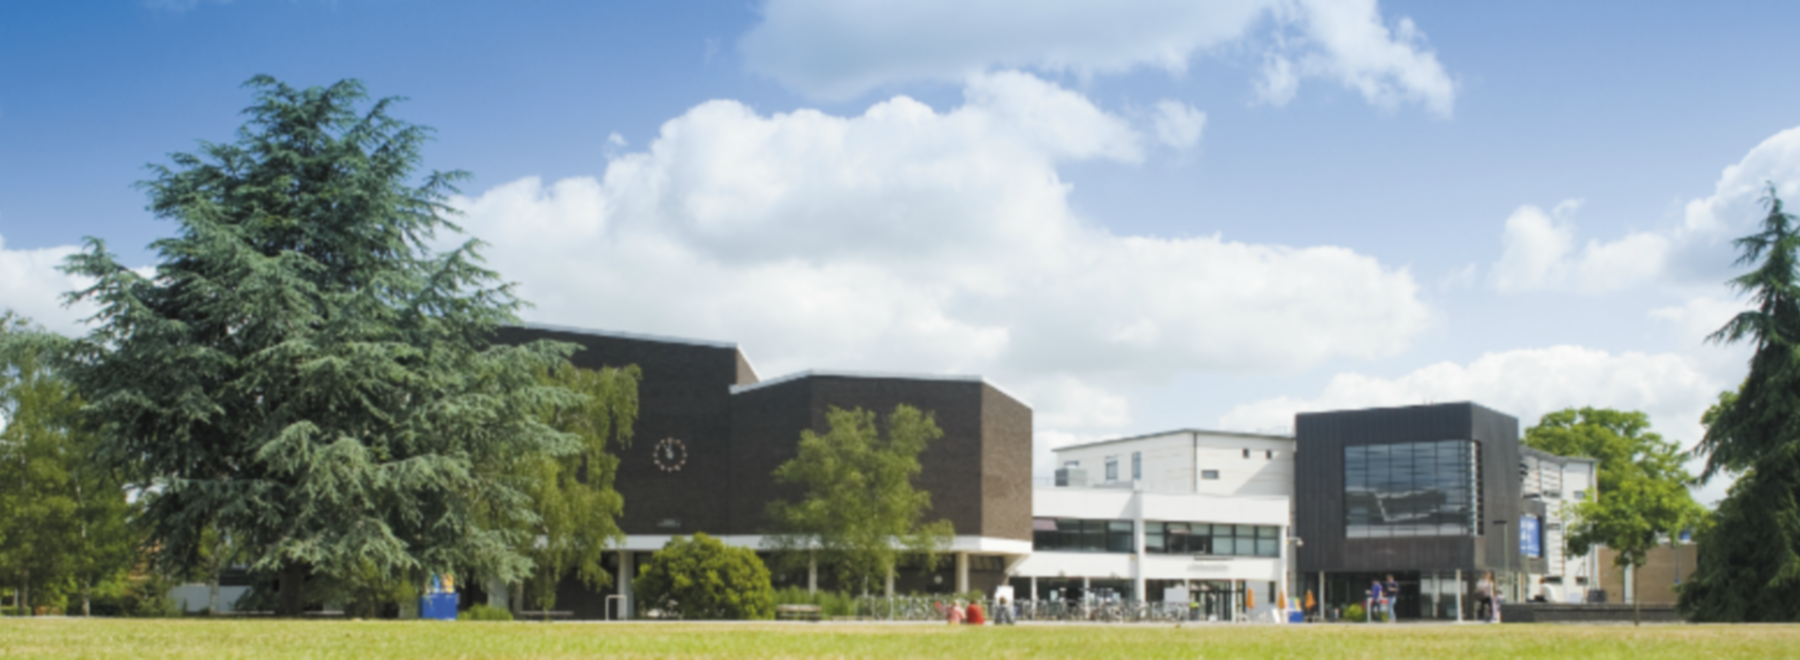 University of Reading header